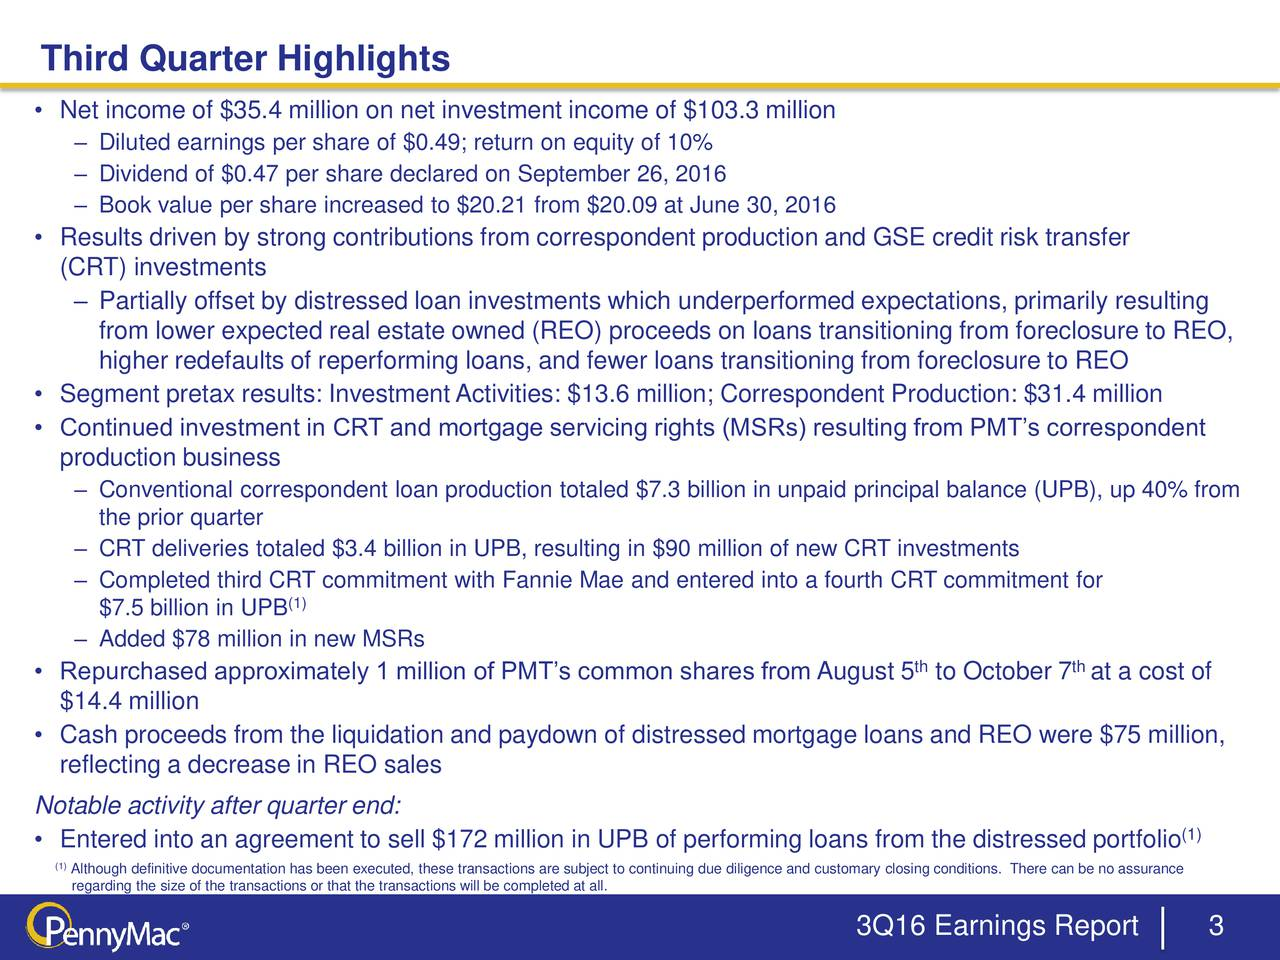 Net income of $35.4 million on net investment income of $103.3 million Diluted earnings per share of $0.49; return on equity of 10% Dividend of $0.47 per share declared on September 26, 2016 Book value per share increased to $20.21 from $20.09 at June 30, 2016 Results driven by strong contributions from correspondent production and GSE credit risk transfer (CRT) investments Partially offset by distressed loan investments which underperformed expectations, primarily resulting from lower expected real estate owned (REO) proceeds on loans transitioning from foreclosure to REO, higher redefaults of reperforming loans, and fewer loans transitioning from foreclosure to REO Segment pretax results: InvestmentActivities: $13.6 million; Correspondent Production: $31.4 million Continued investment in CRT and mortgage servicing rights (MSRs) resulting from PMTs correspondent production business Conventional correspondent loan production totaled $7.3 billion in unpaid principal balance (UPB), up 40% from the prior quarter CRT deliveries totaled $3.4 billion in UPB, resulting in $90 million of new CRT investments Completed third CRT commitment with Fannie Mae and entered into a fourth CRT commitment for (1) $7.5 billion in UPB Added $78 million in new MSRs Repurchased approximately 1 million of PMTs common shares from August 5 to October 7 at a cost of th $14.4 million Cash proceeds from the liquidation and paydown of distressed mortgage loans and REO were $75 million, reflecting a decrease in REO sales Notable activity after quarter end: Entered into an agreement to sell $172 million in UPB of performing loans from the distressed portfolio (1) (1Although definitive documentation has been executed, these transactions are subject to continuing due diligence and customary closing conditions. There can be no assurance regarding the size of the transactions or that the transactions will be completed at all. 3Q16 Earnings Report 3